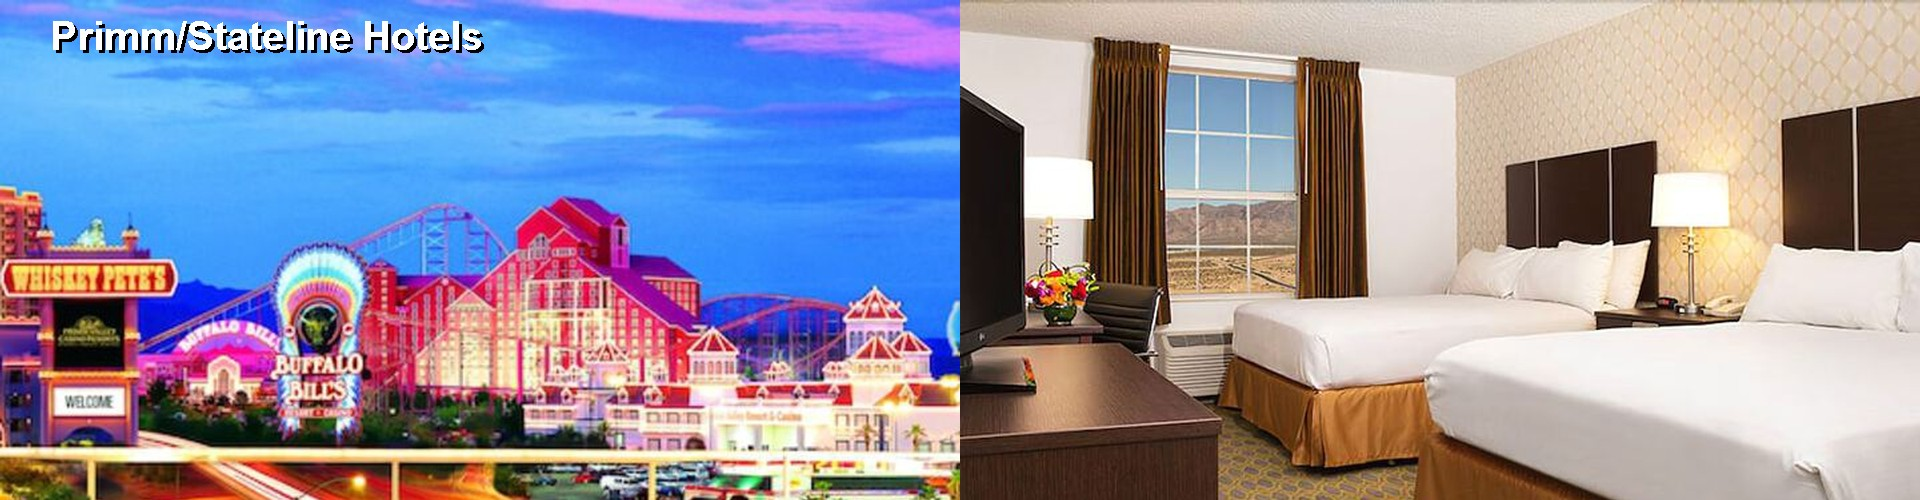 1 Best Hotels near Primm/Stateline